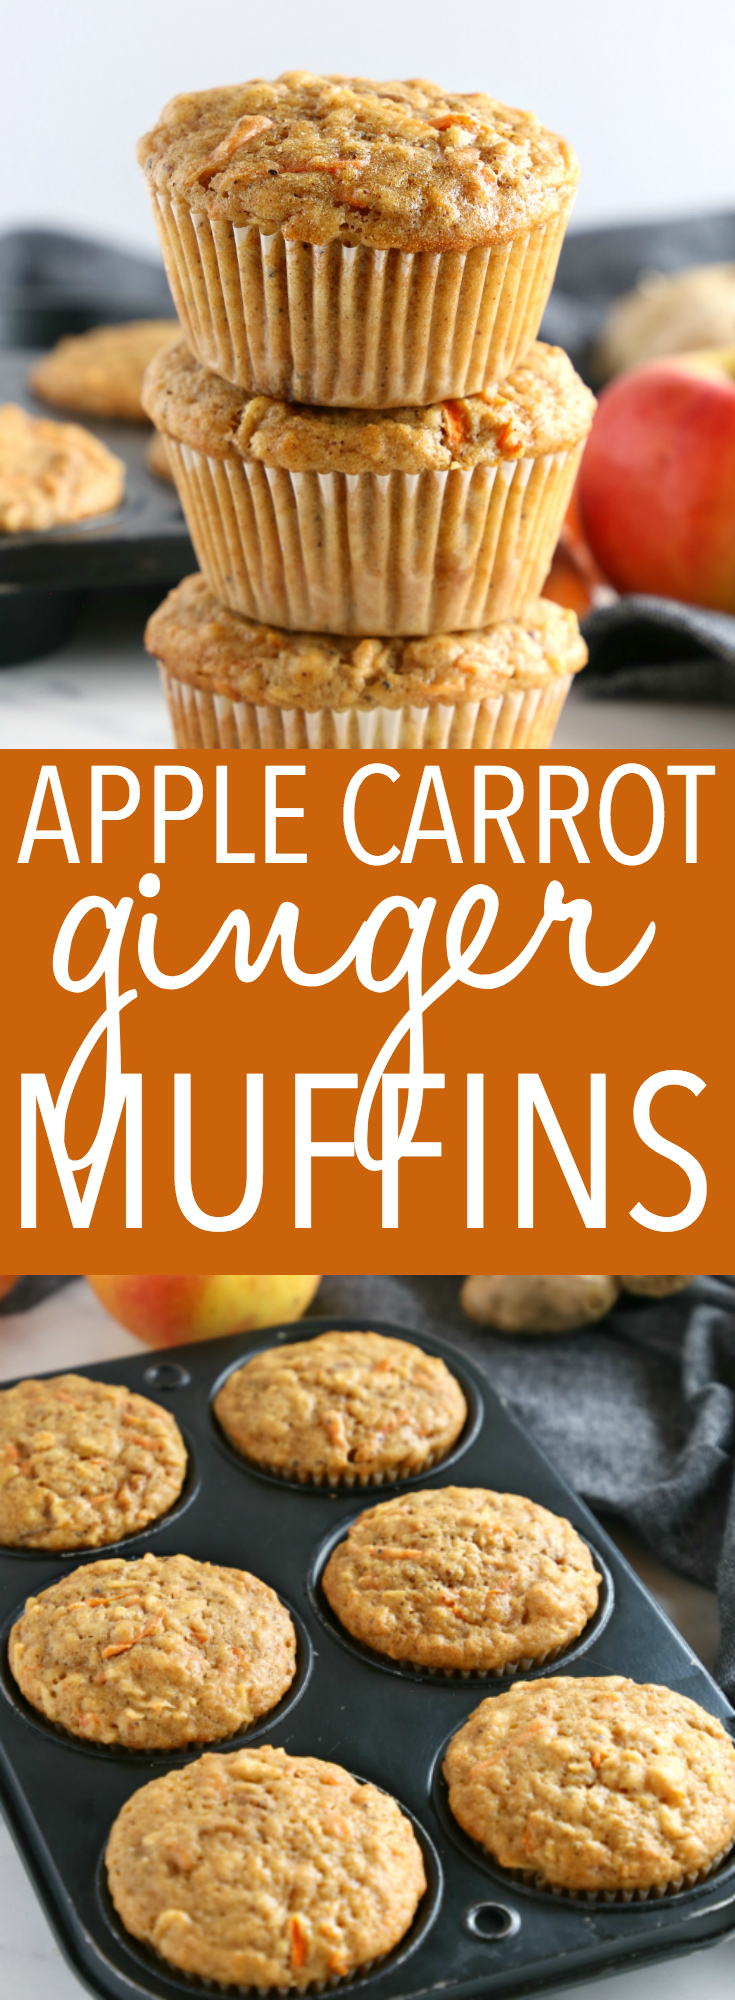 These Apple Carrot Ginger Muffins are the perfect healthier snack packed with fruit and veggies! And they're so easy to make in only one bowl! Recipe from thebusybaker.ca! #applecarrotmuffins #easymuffinrecipe #carrotgingermuffins via @busybakerblog